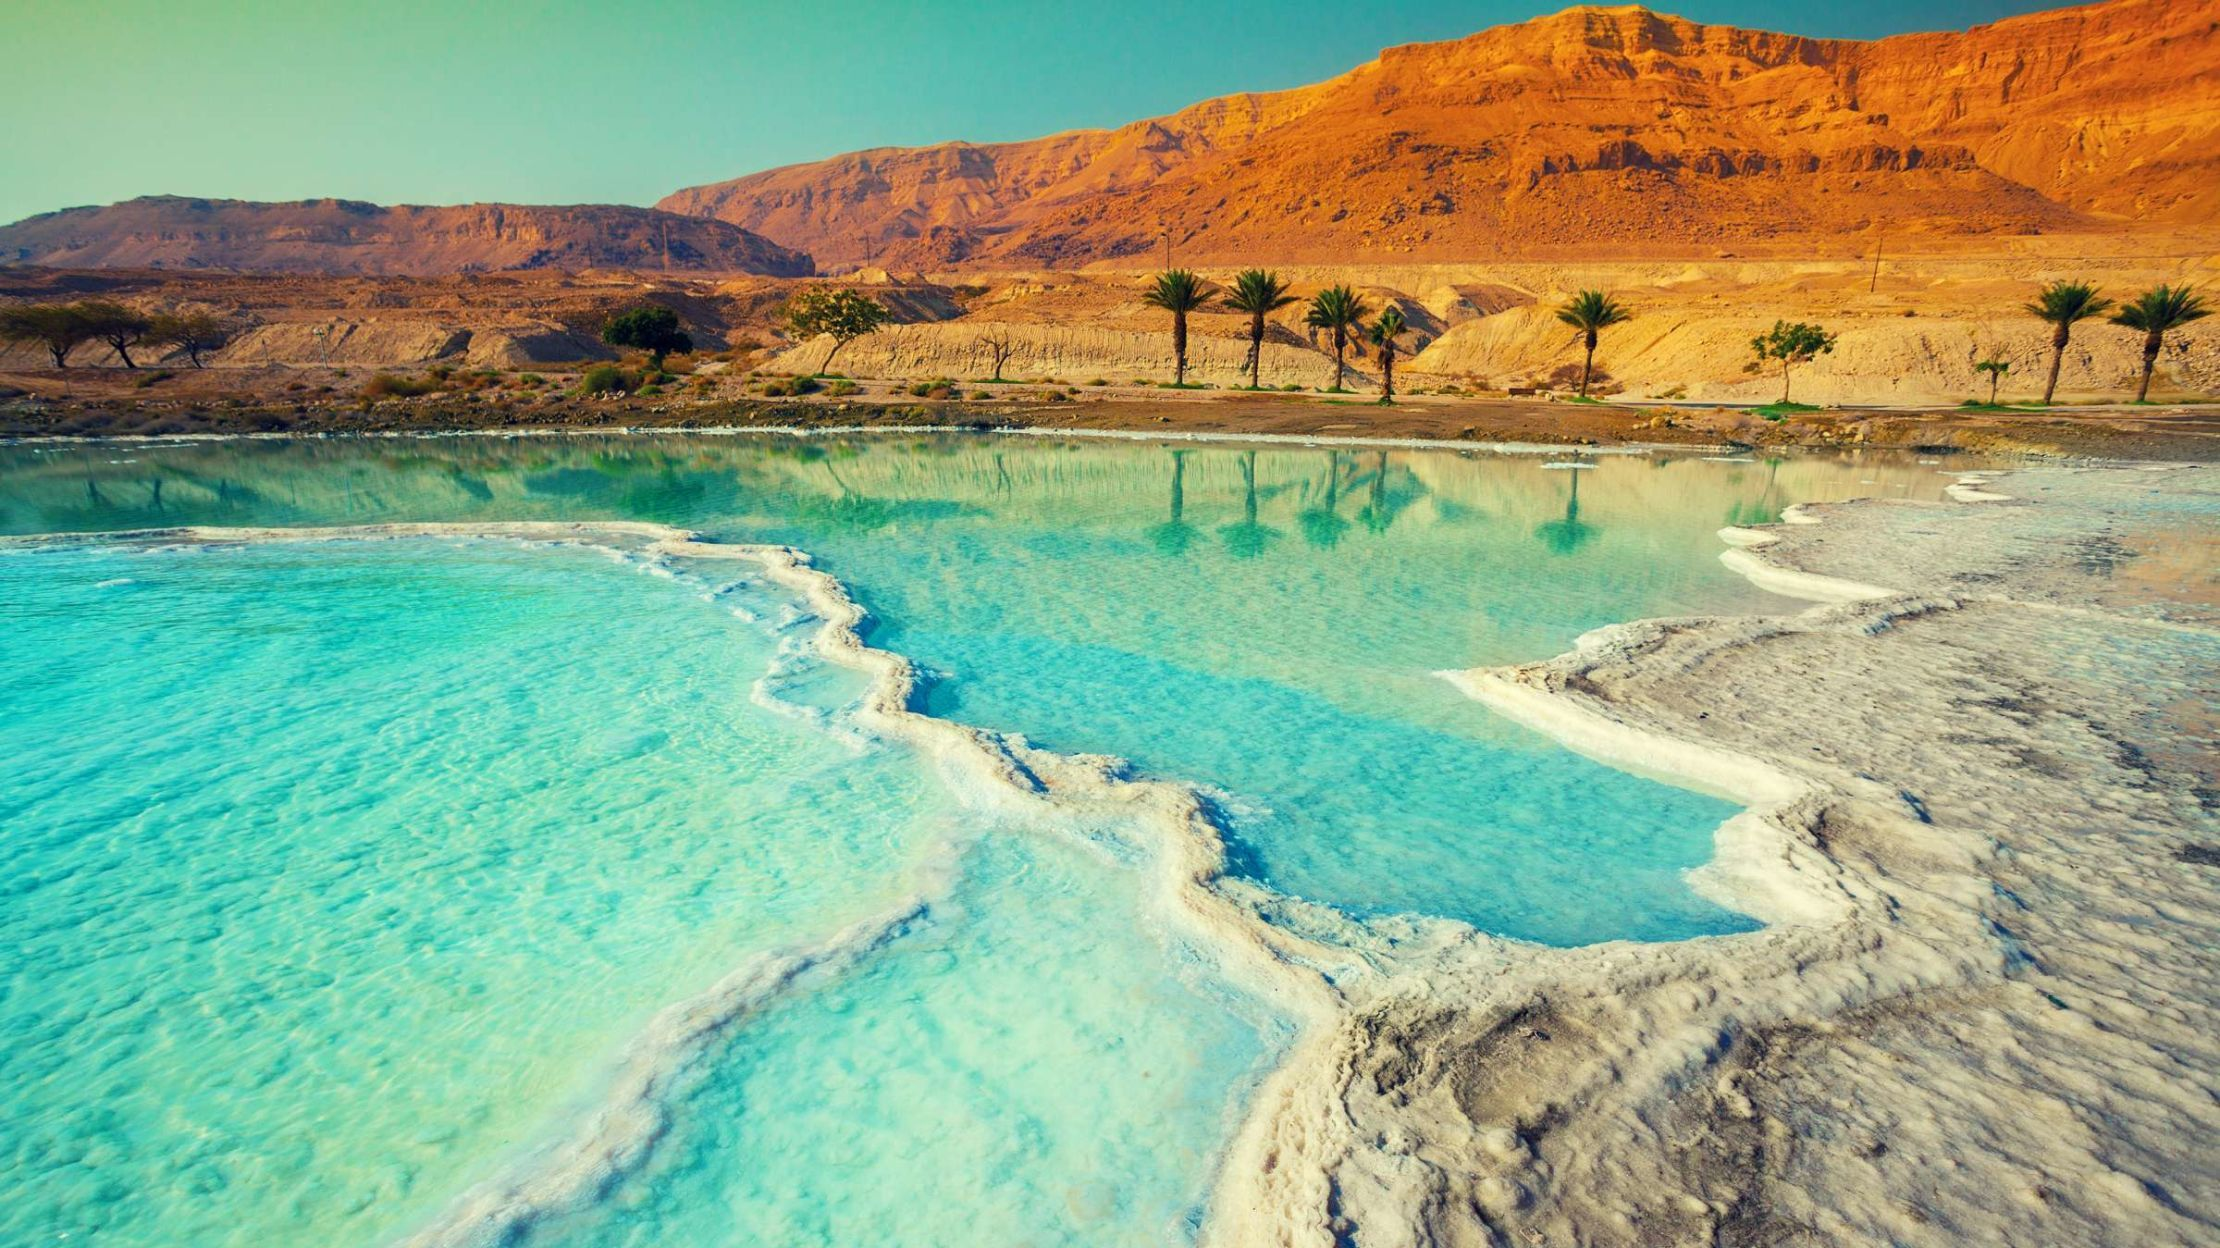 9 Deep Facts About the Dead Sea